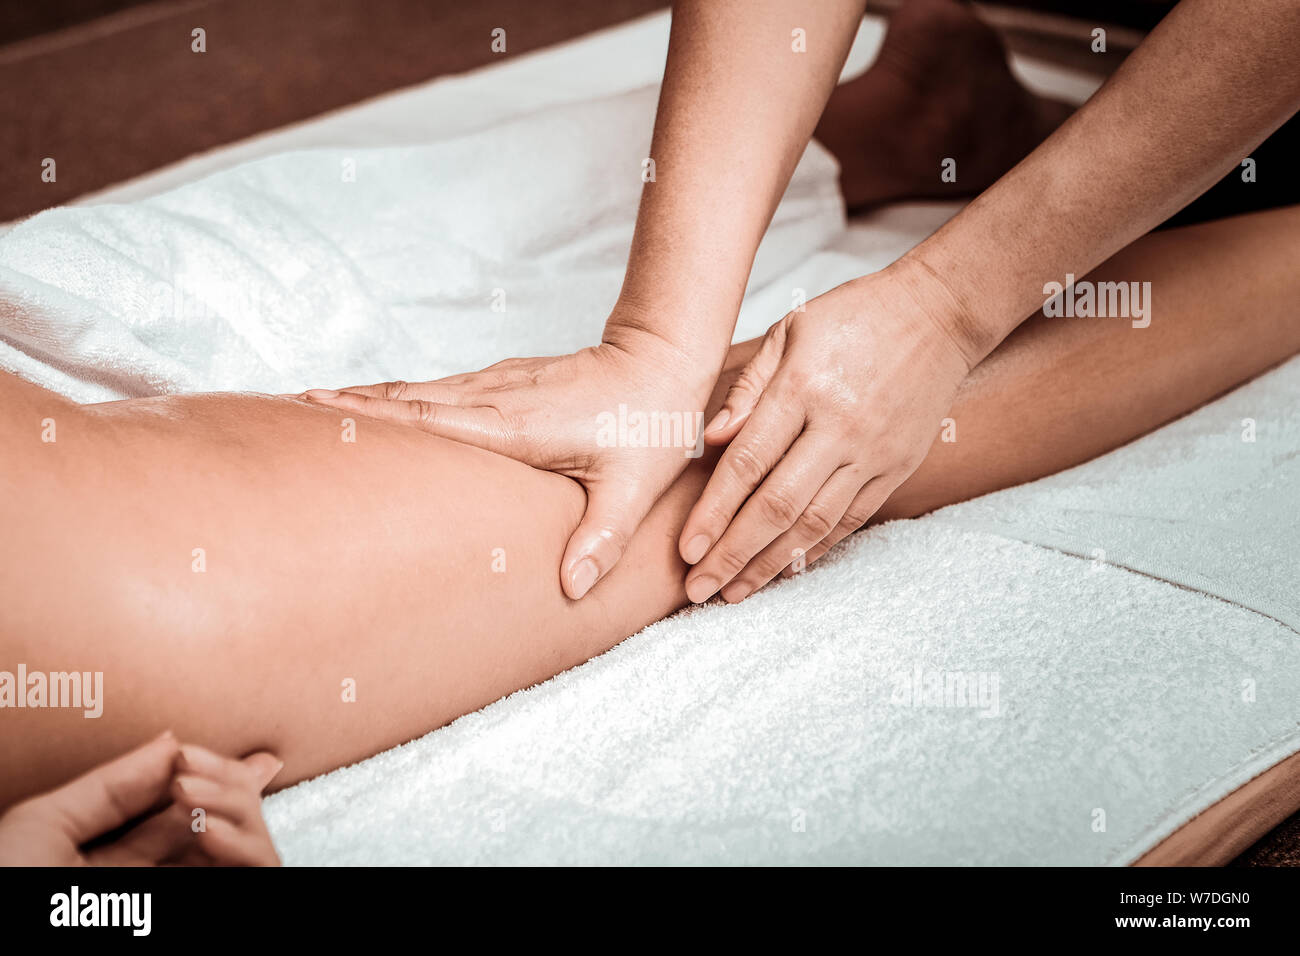 Masseuse doing oil massage of clients hips. Stock Photo